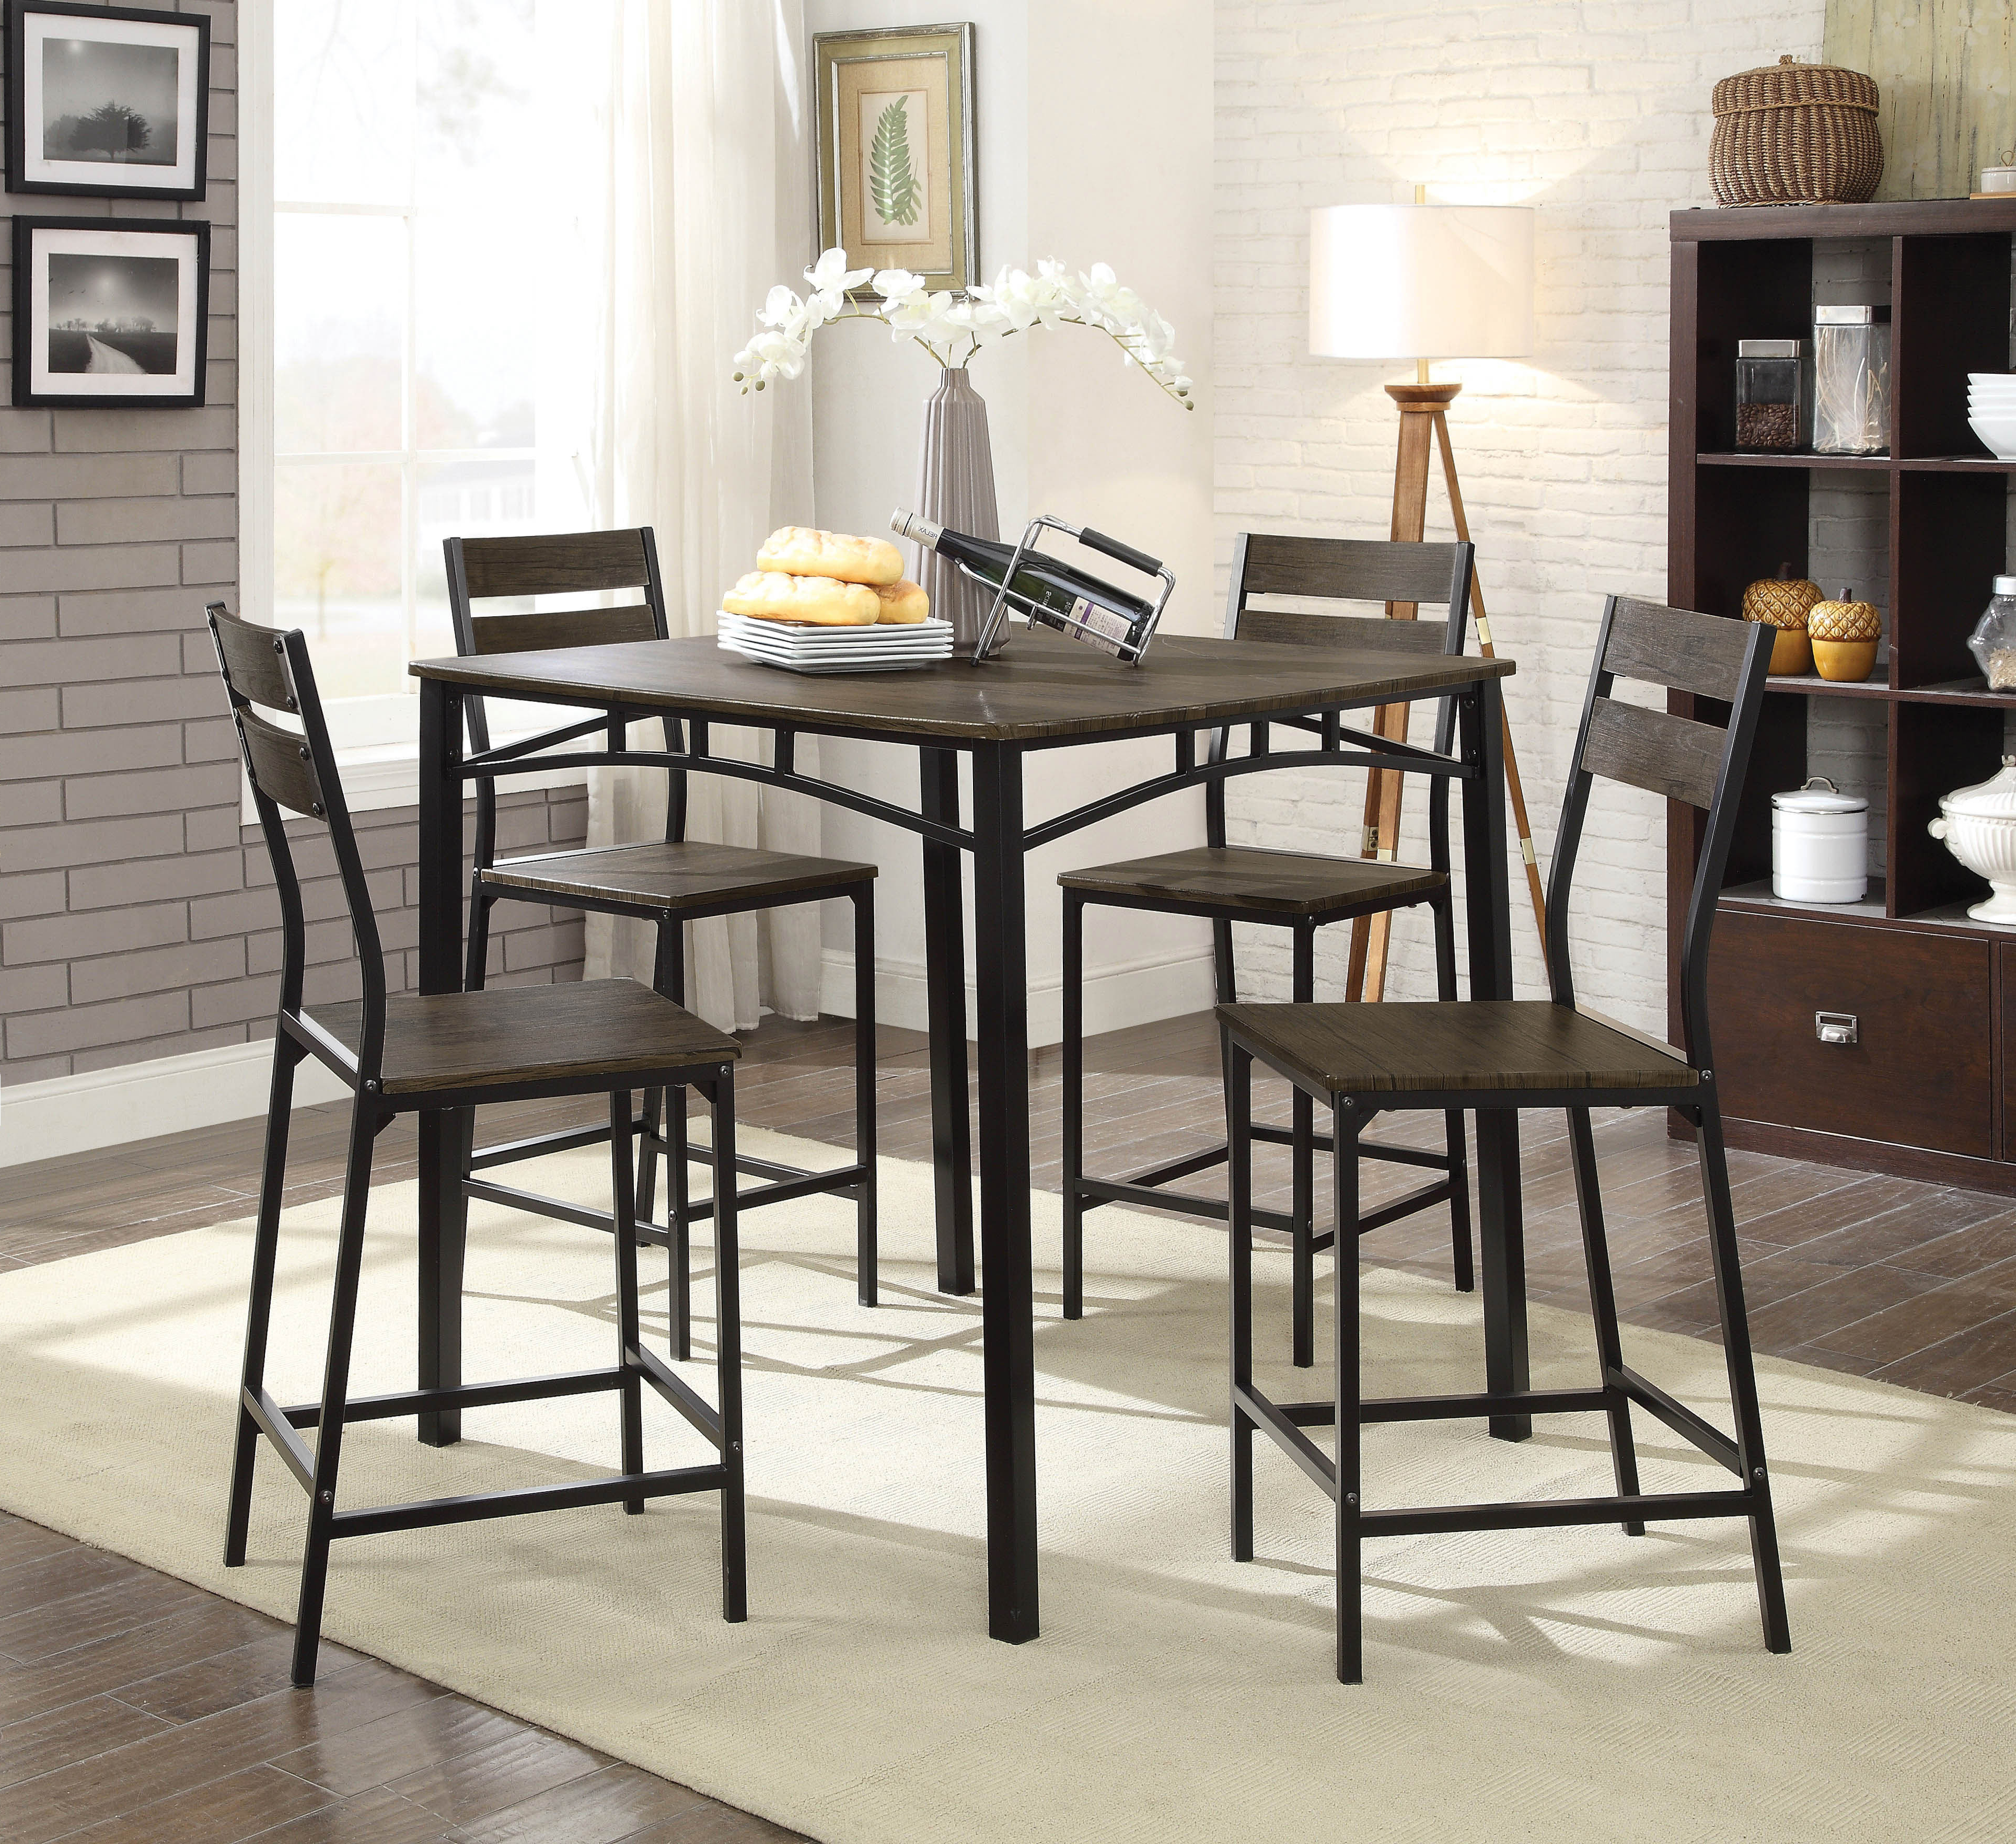 Well Liked Autberry 5 Piece Pub Table Set With Regard To Autberry 5 Piece Dining Sets (View 19 of 20)